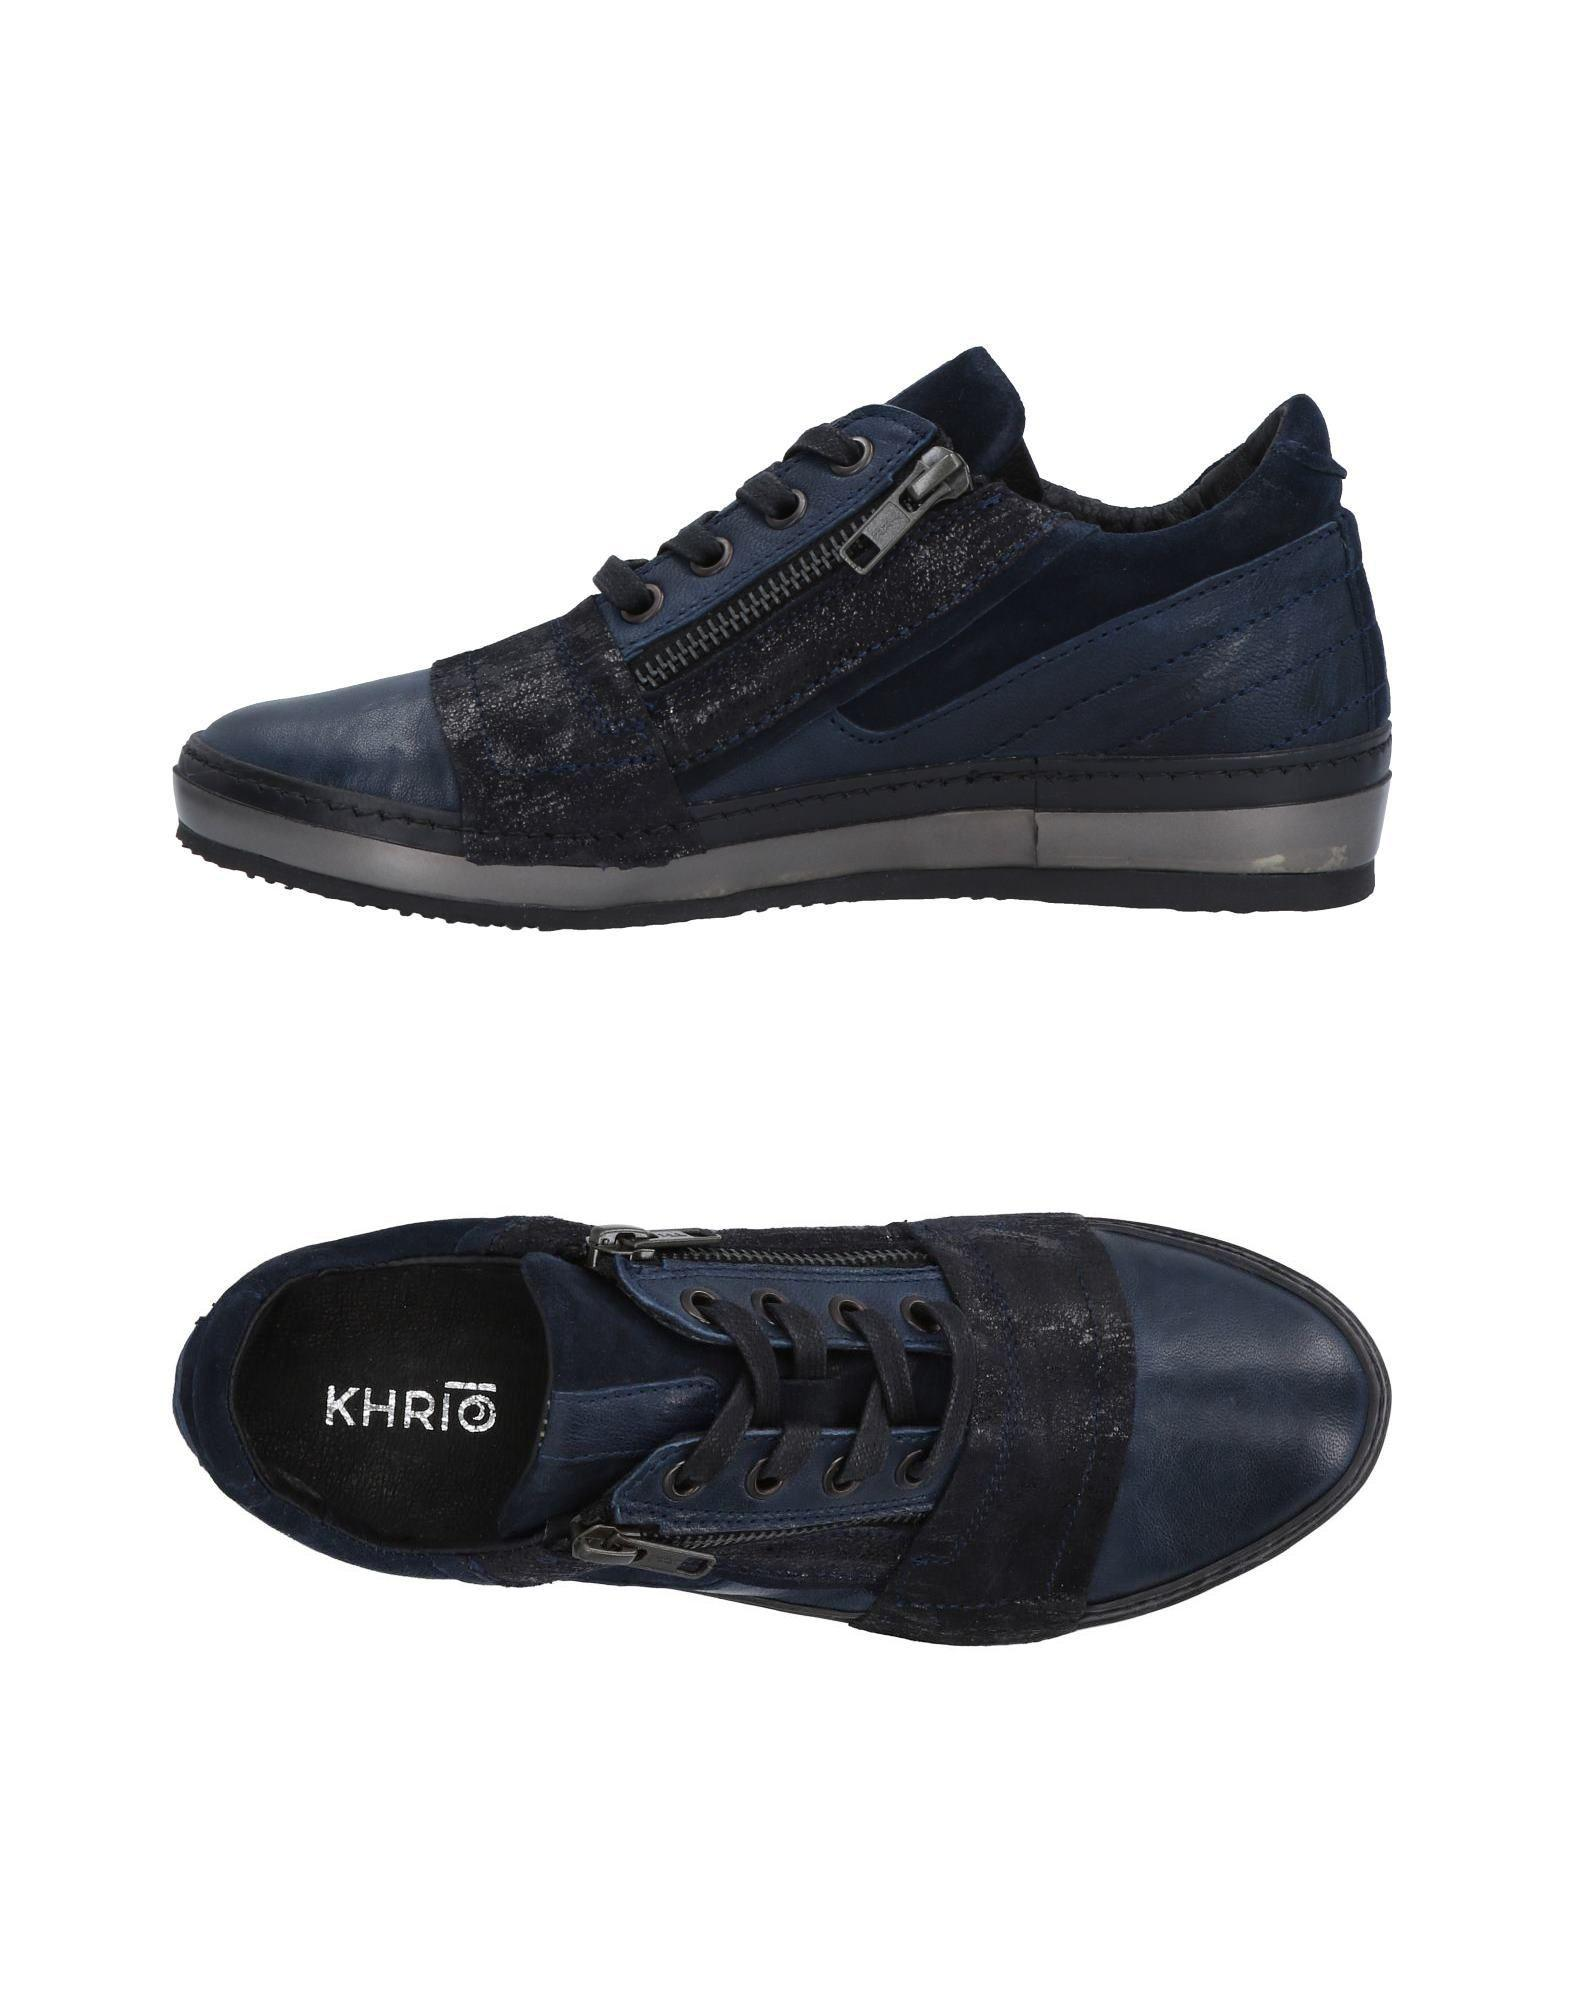 Sneakers amp; in Blue Khrio tops Low Lyst IFq07